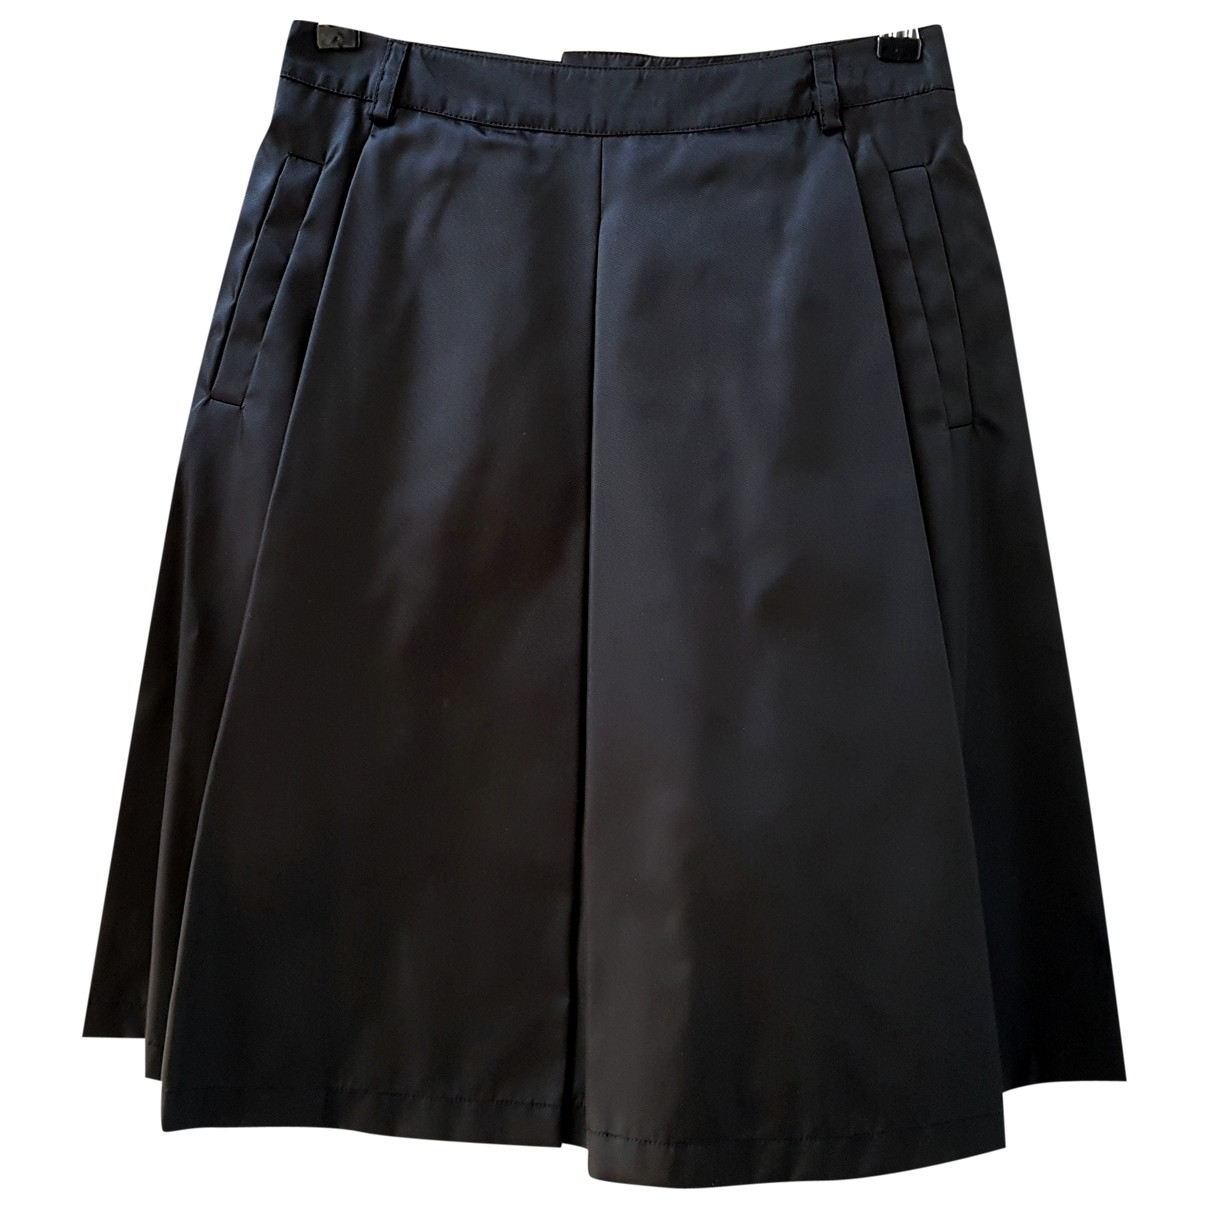 Prada \N Black skirt for Women 38 IT